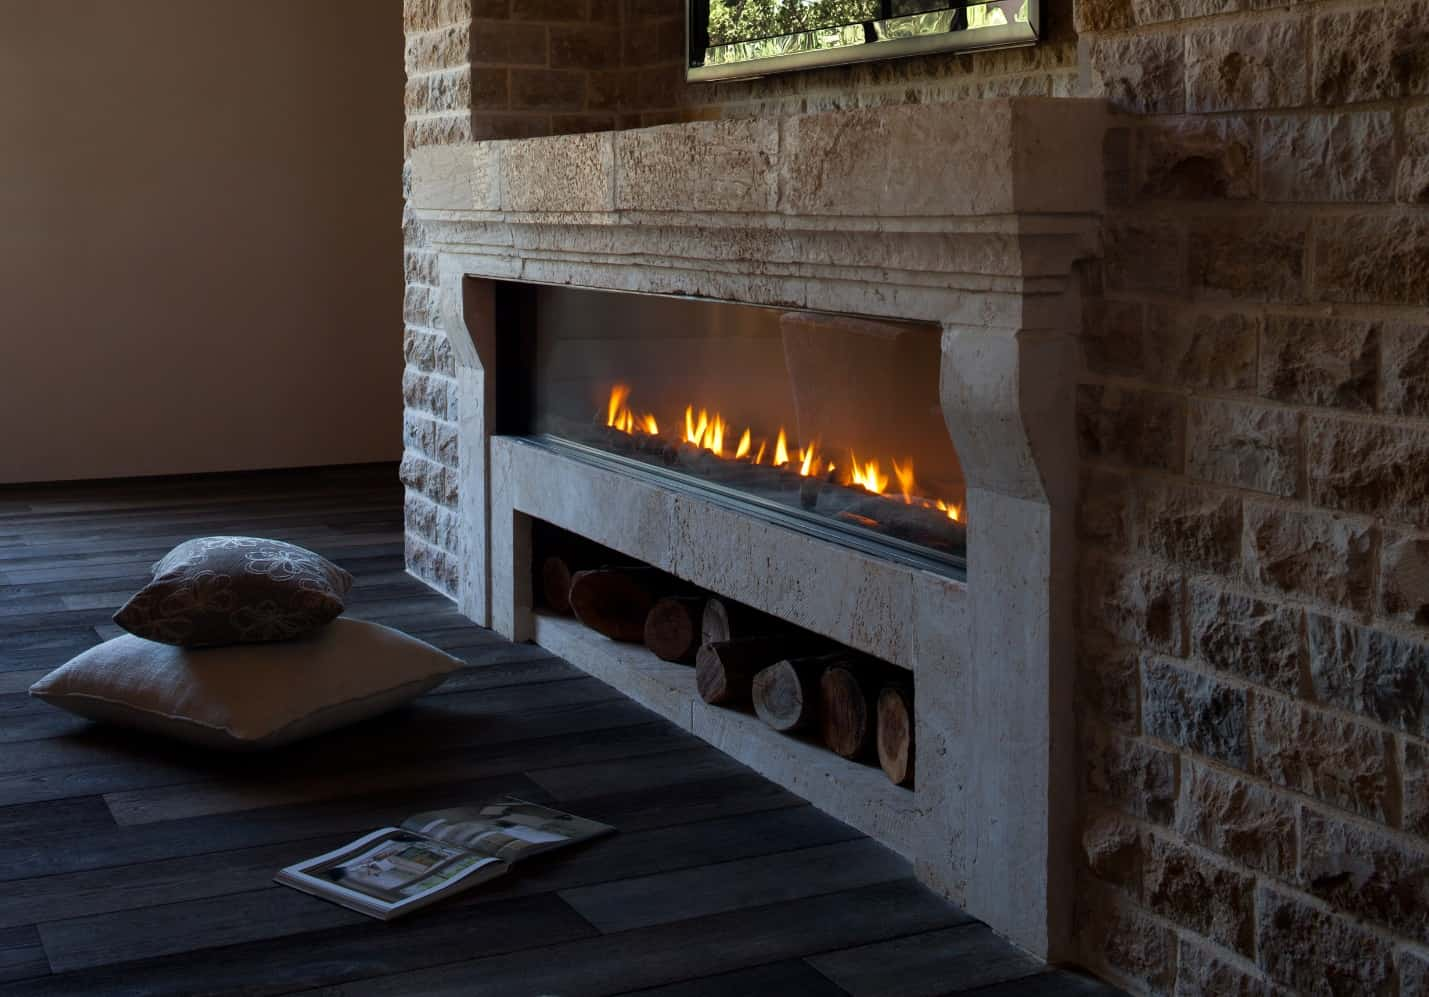 Gas Fireplace Faq Help Massachusetts Stay Green And Safe With An Ortal Direct Vent